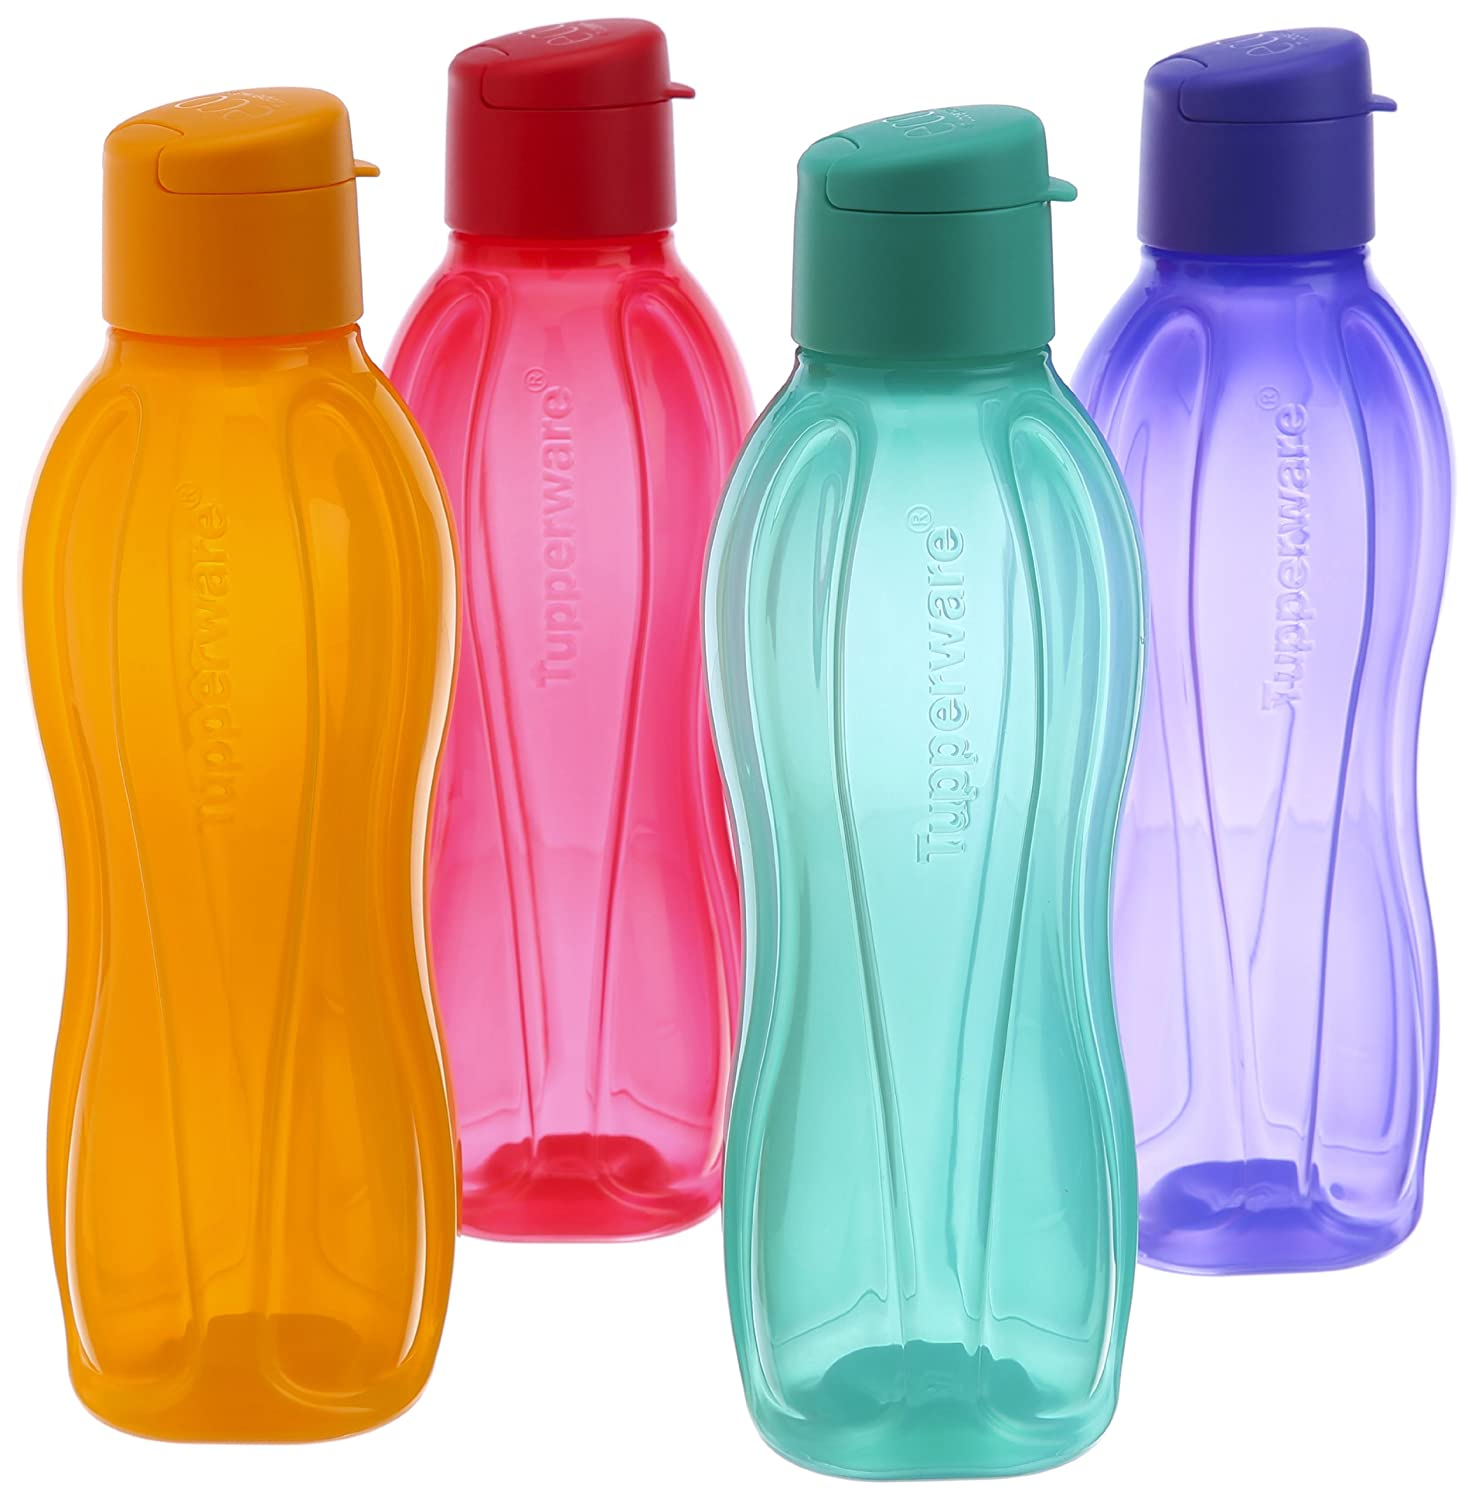 Water Bottle Set: Buy A Set Of 4 Tupperware Flip Top Water Bottle At Rs 785